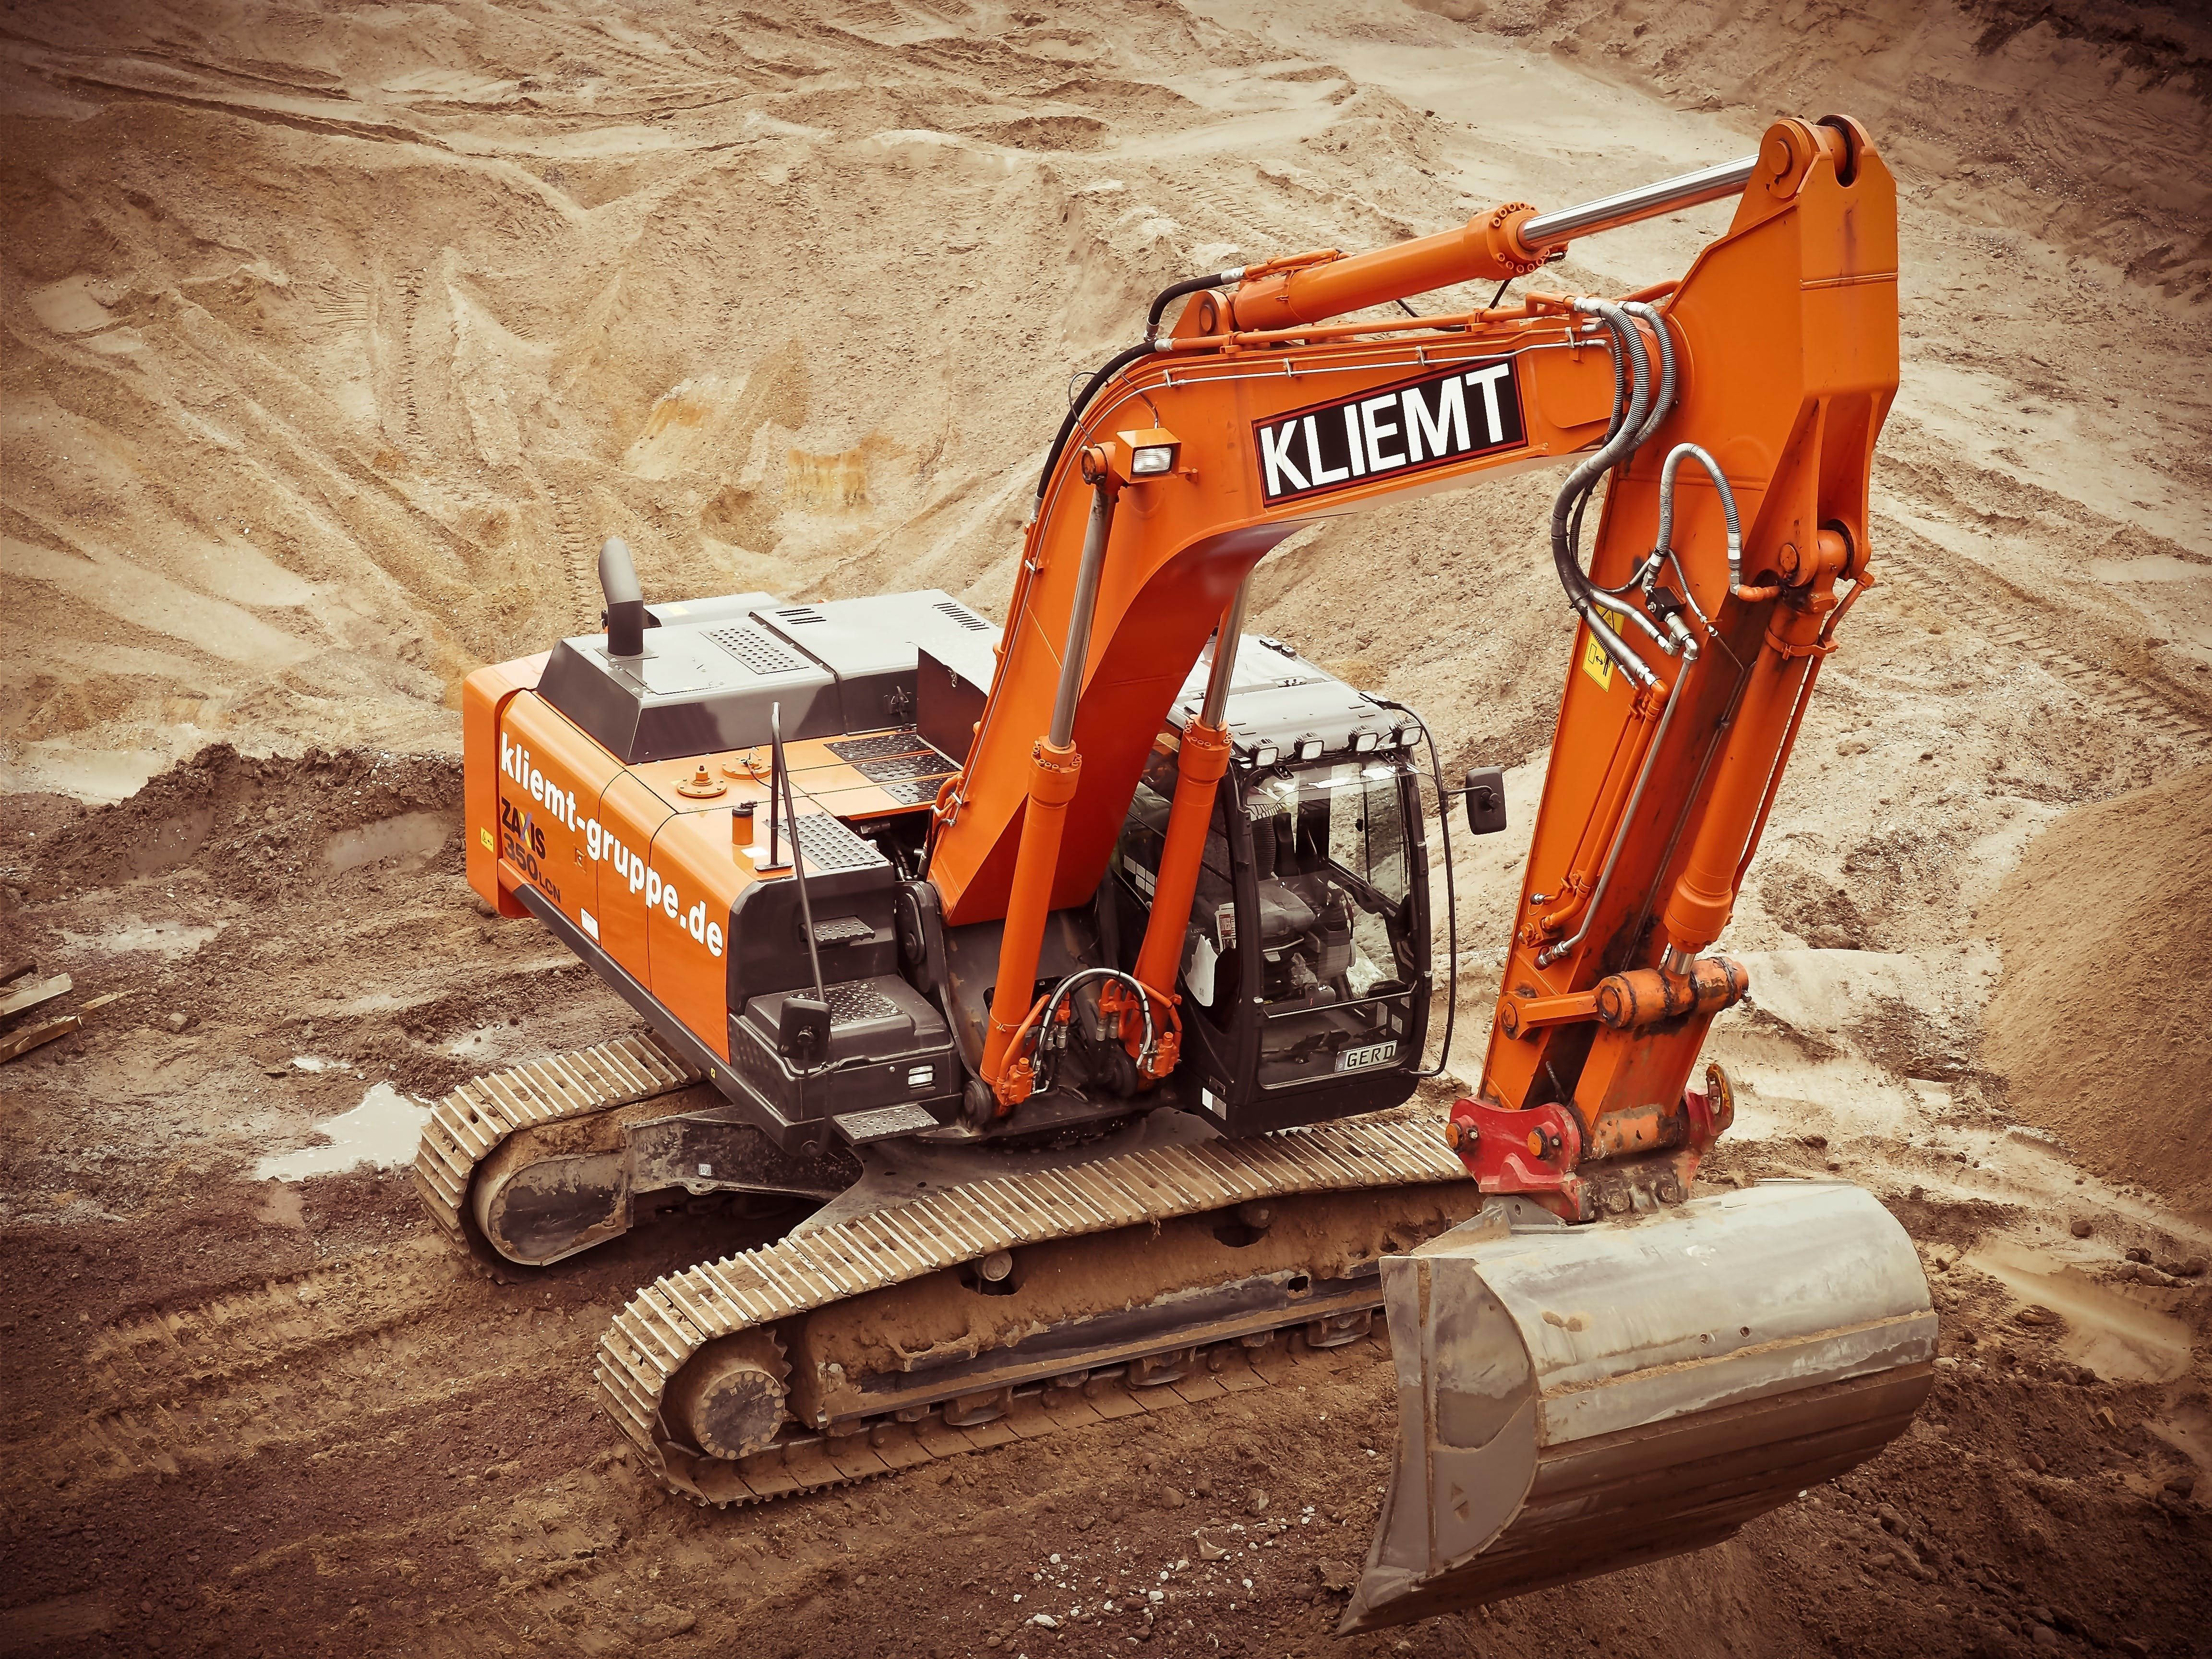 Orange Kliemt Excavator on Brown Soil